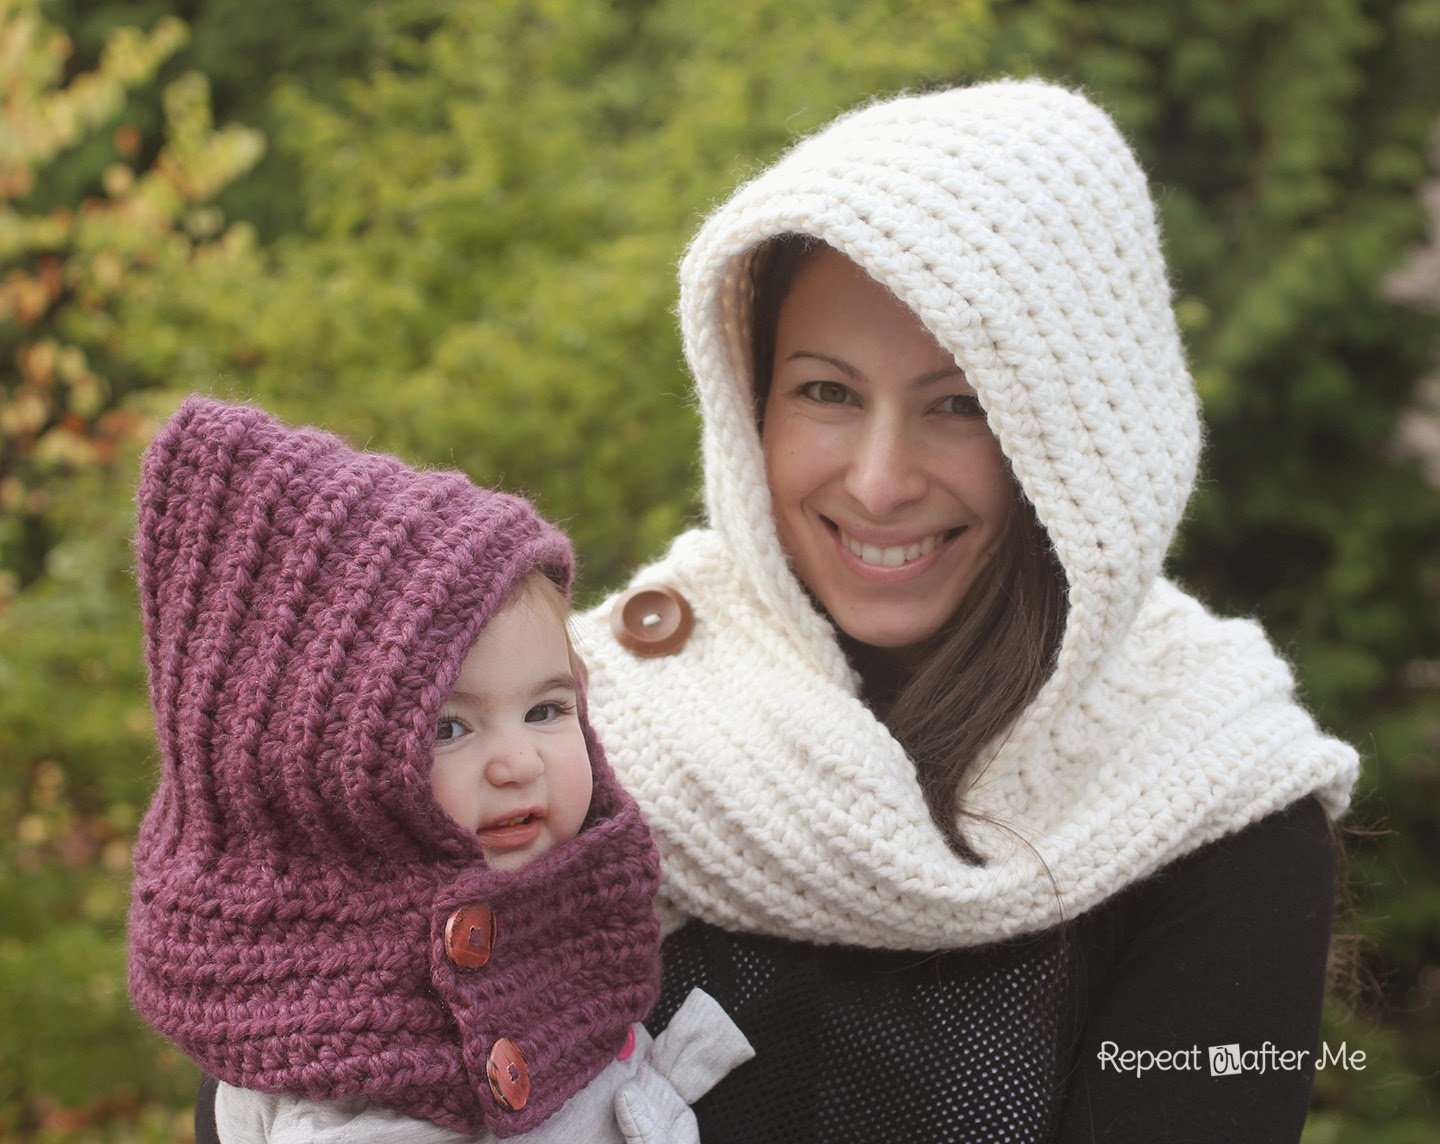 Crochet Patterns Scarfie Yarn : 20 Free Crochet Scarves and Cowls ? Oombawka Design Crochet